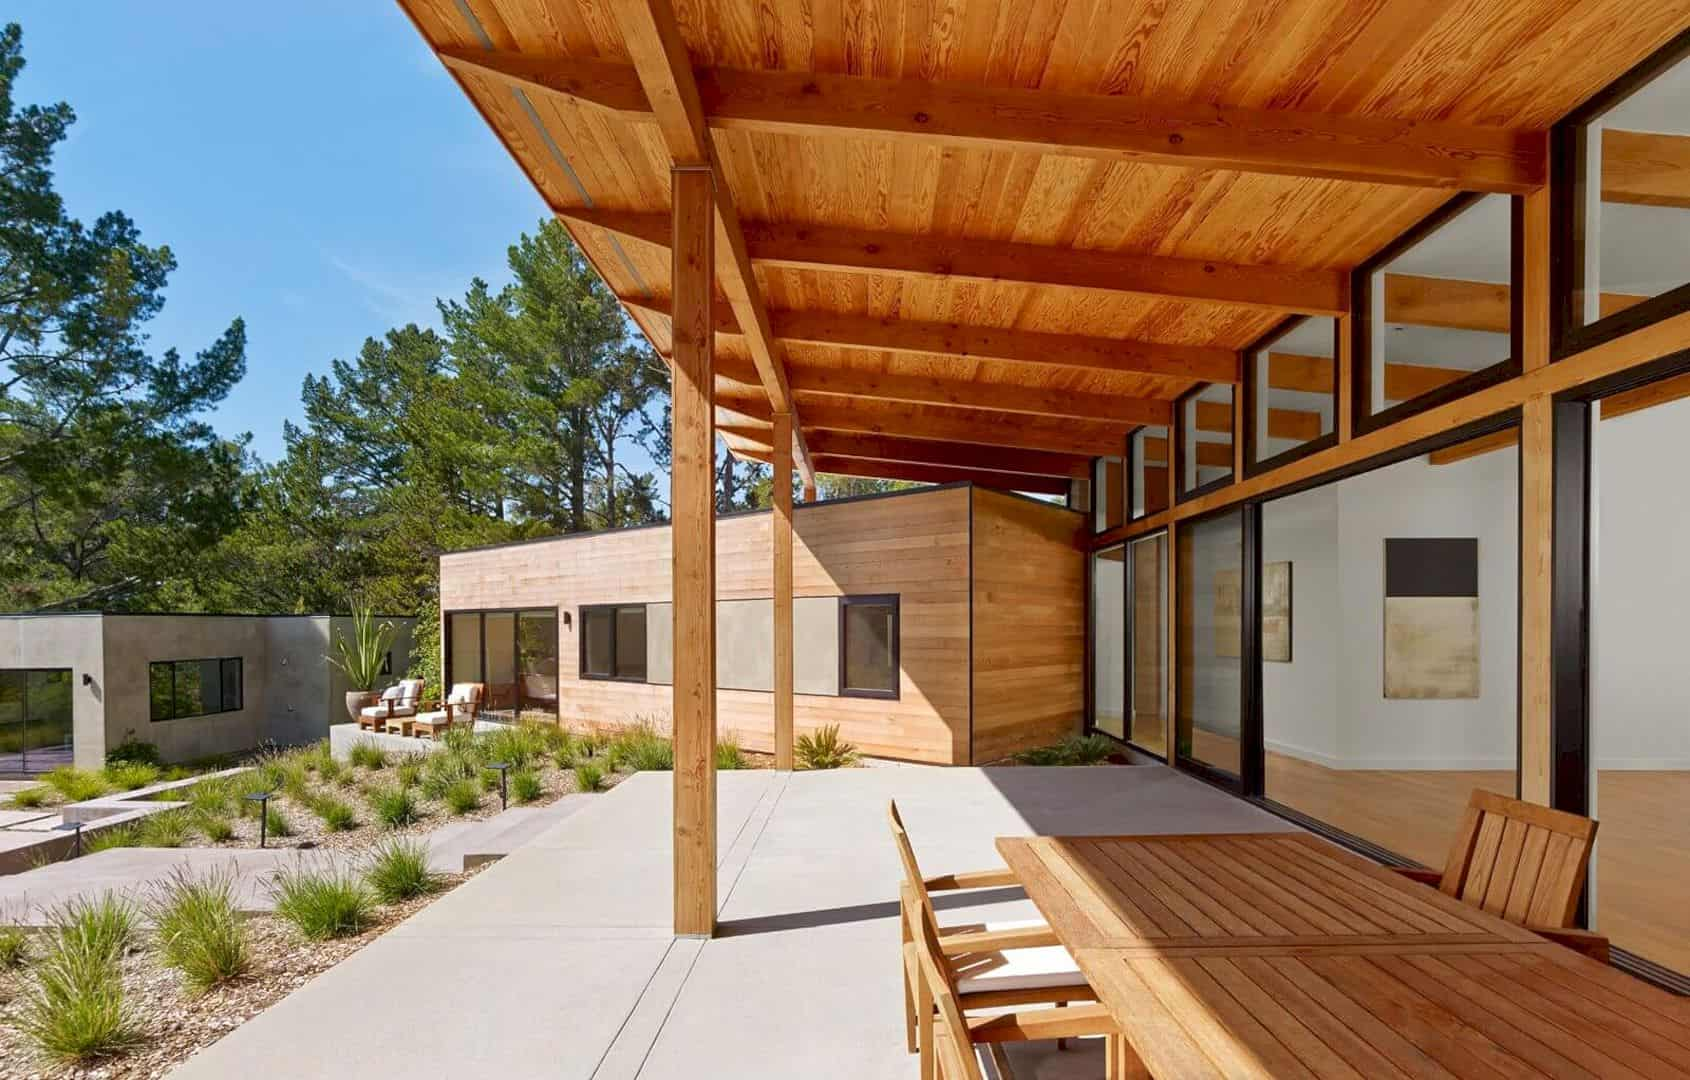 Golden Oak Residence A Light Filled House That Takes Advantage Of Its Bucolic Site 6